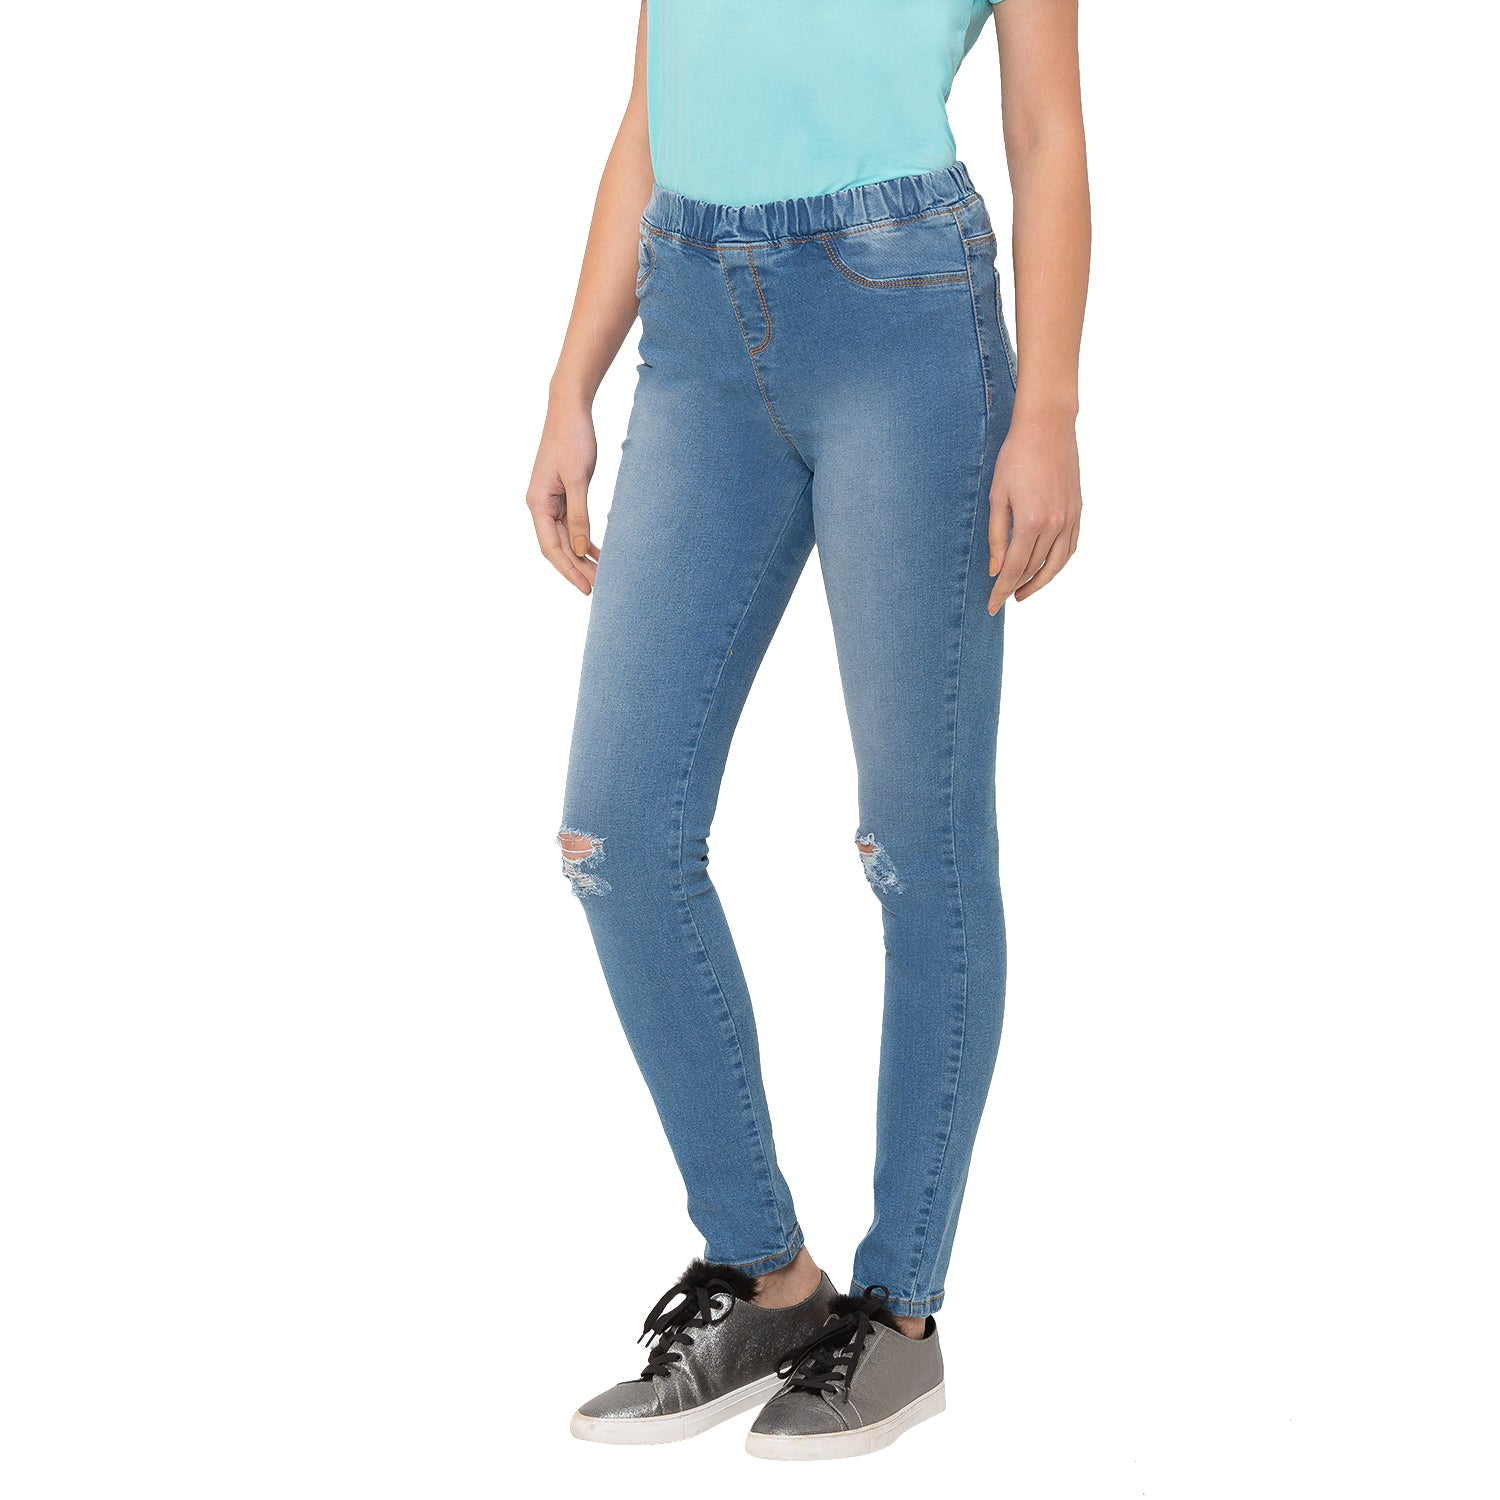 Globus Blue Ripped Jeans-2